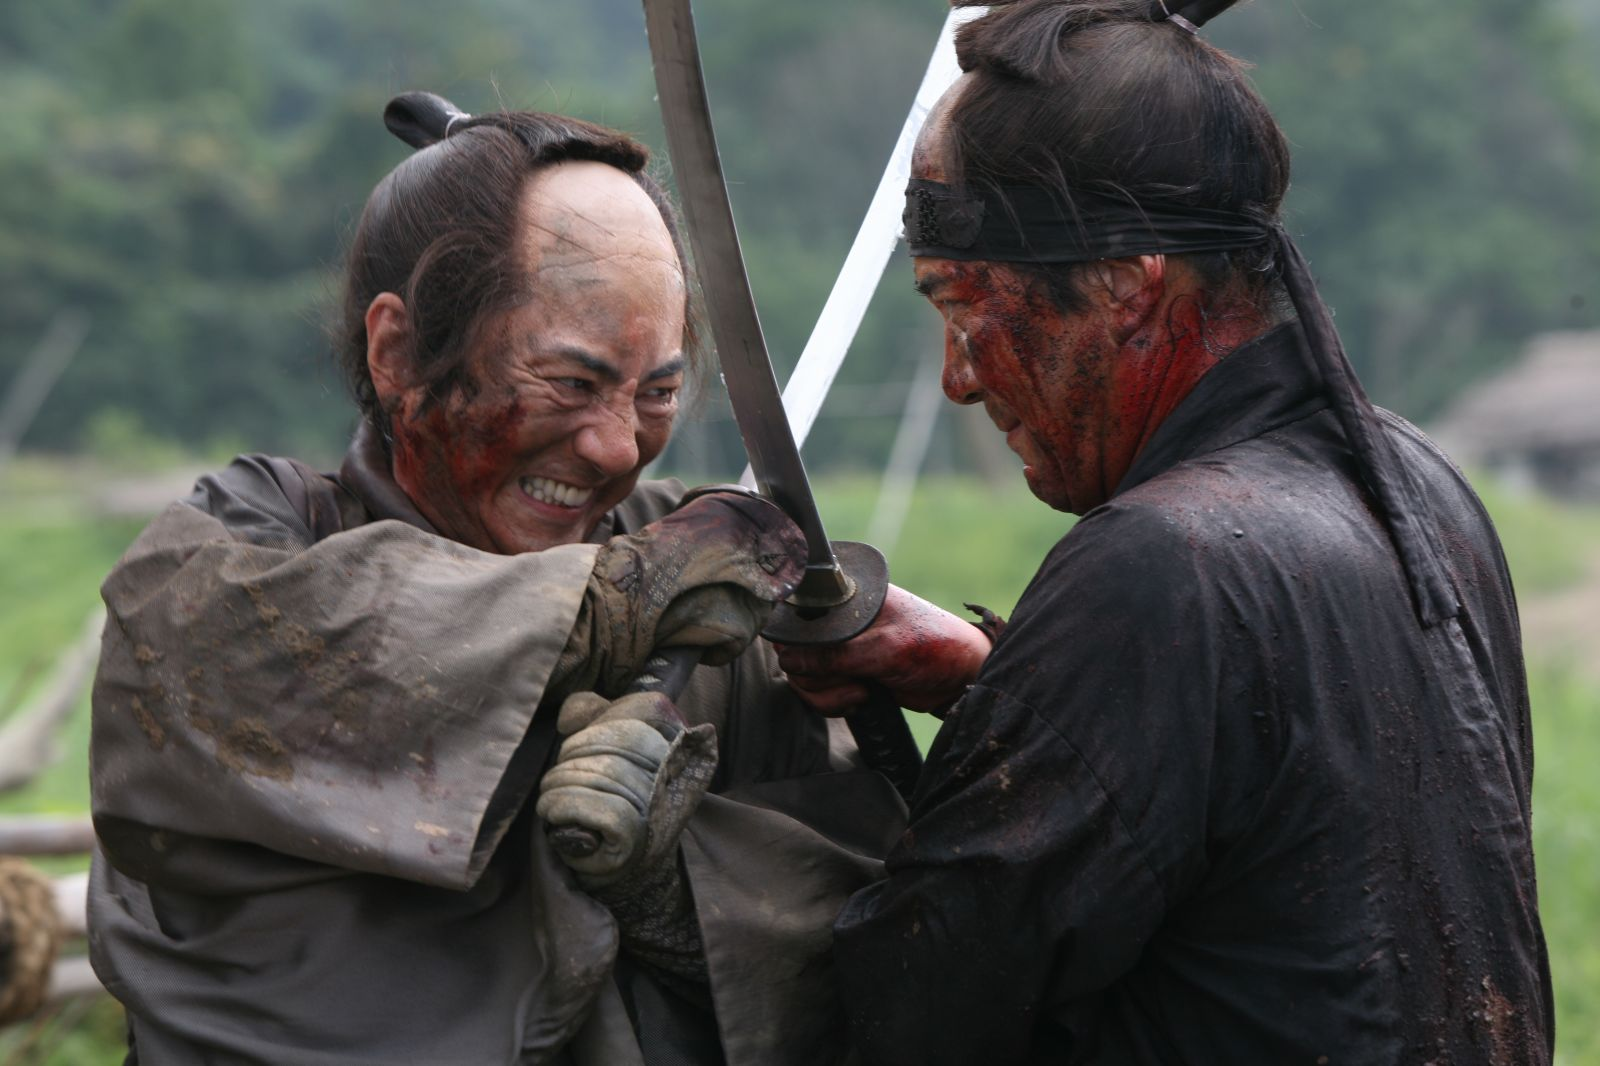 How I've Missed Crossing Swords With You: Samurai Queerness in 13 Assassins